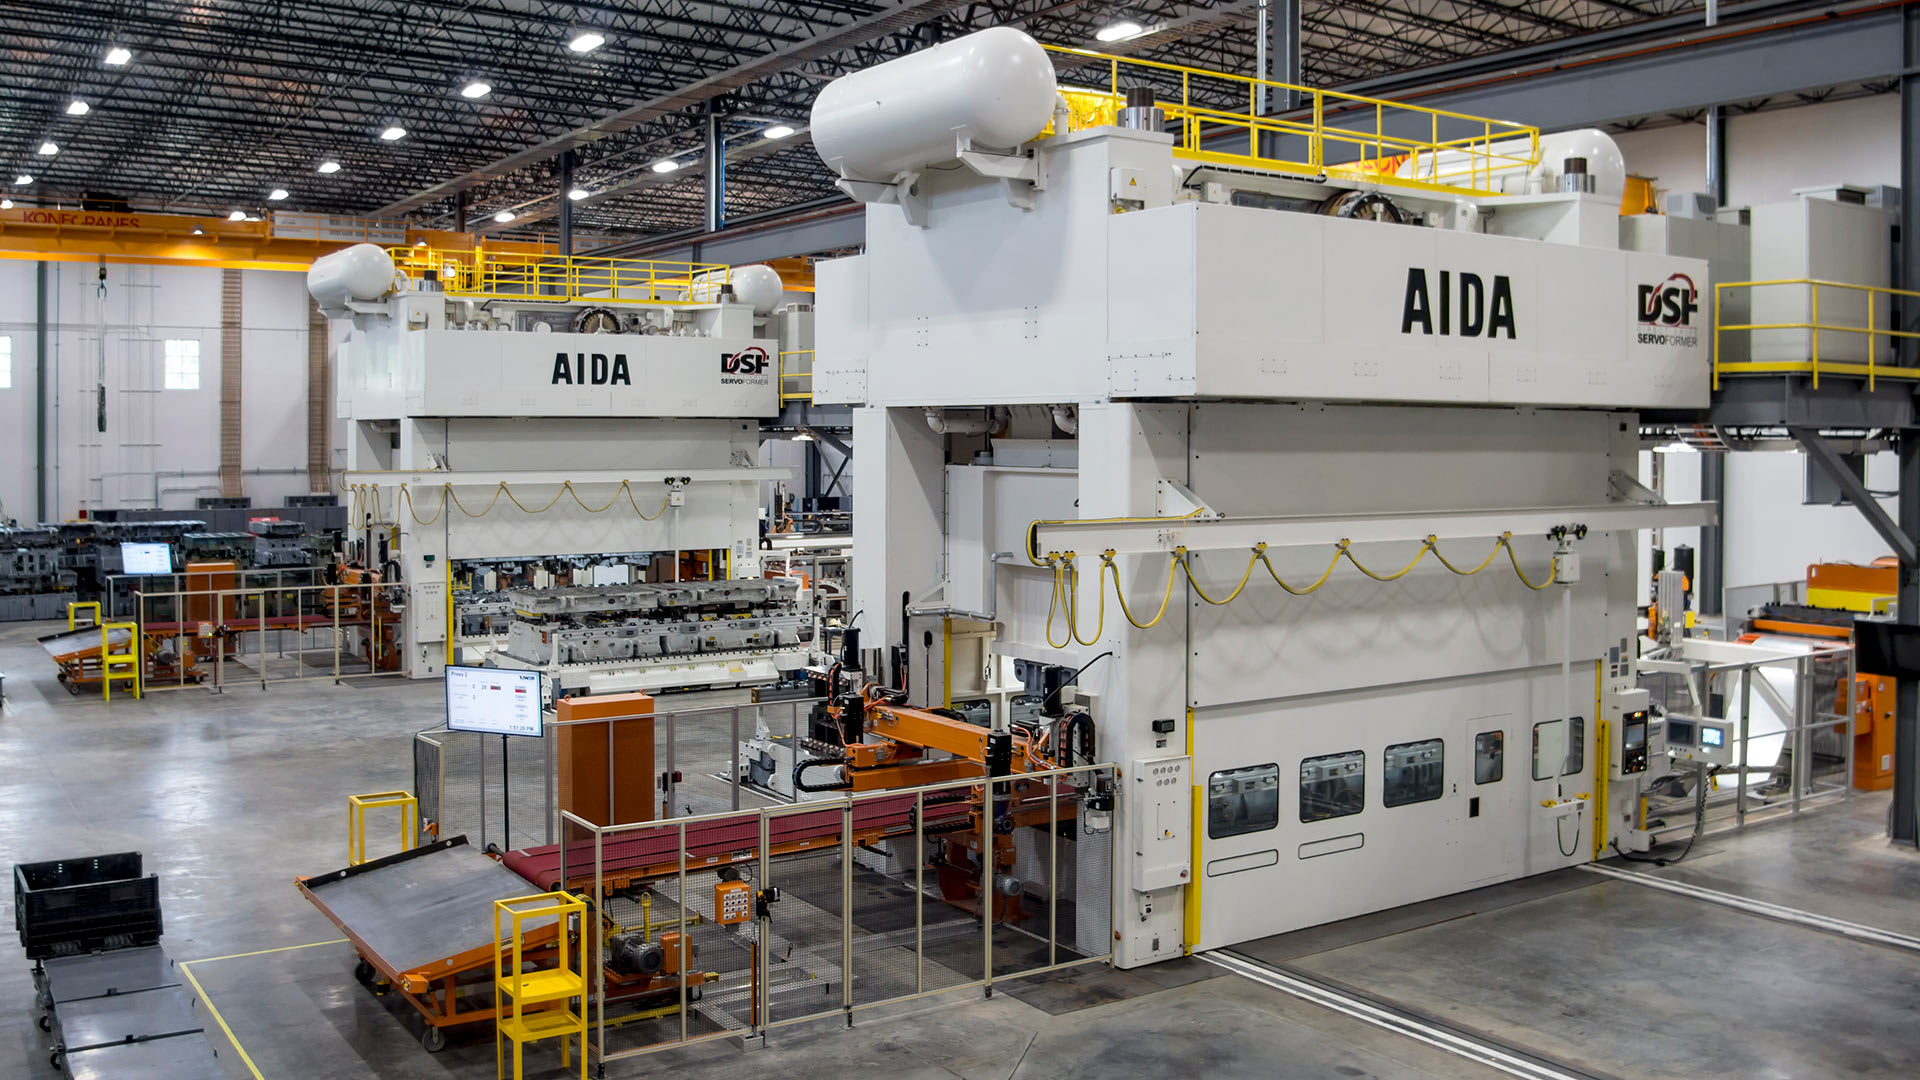 AIDA Servo Presses & Mechanical Stamping Presses